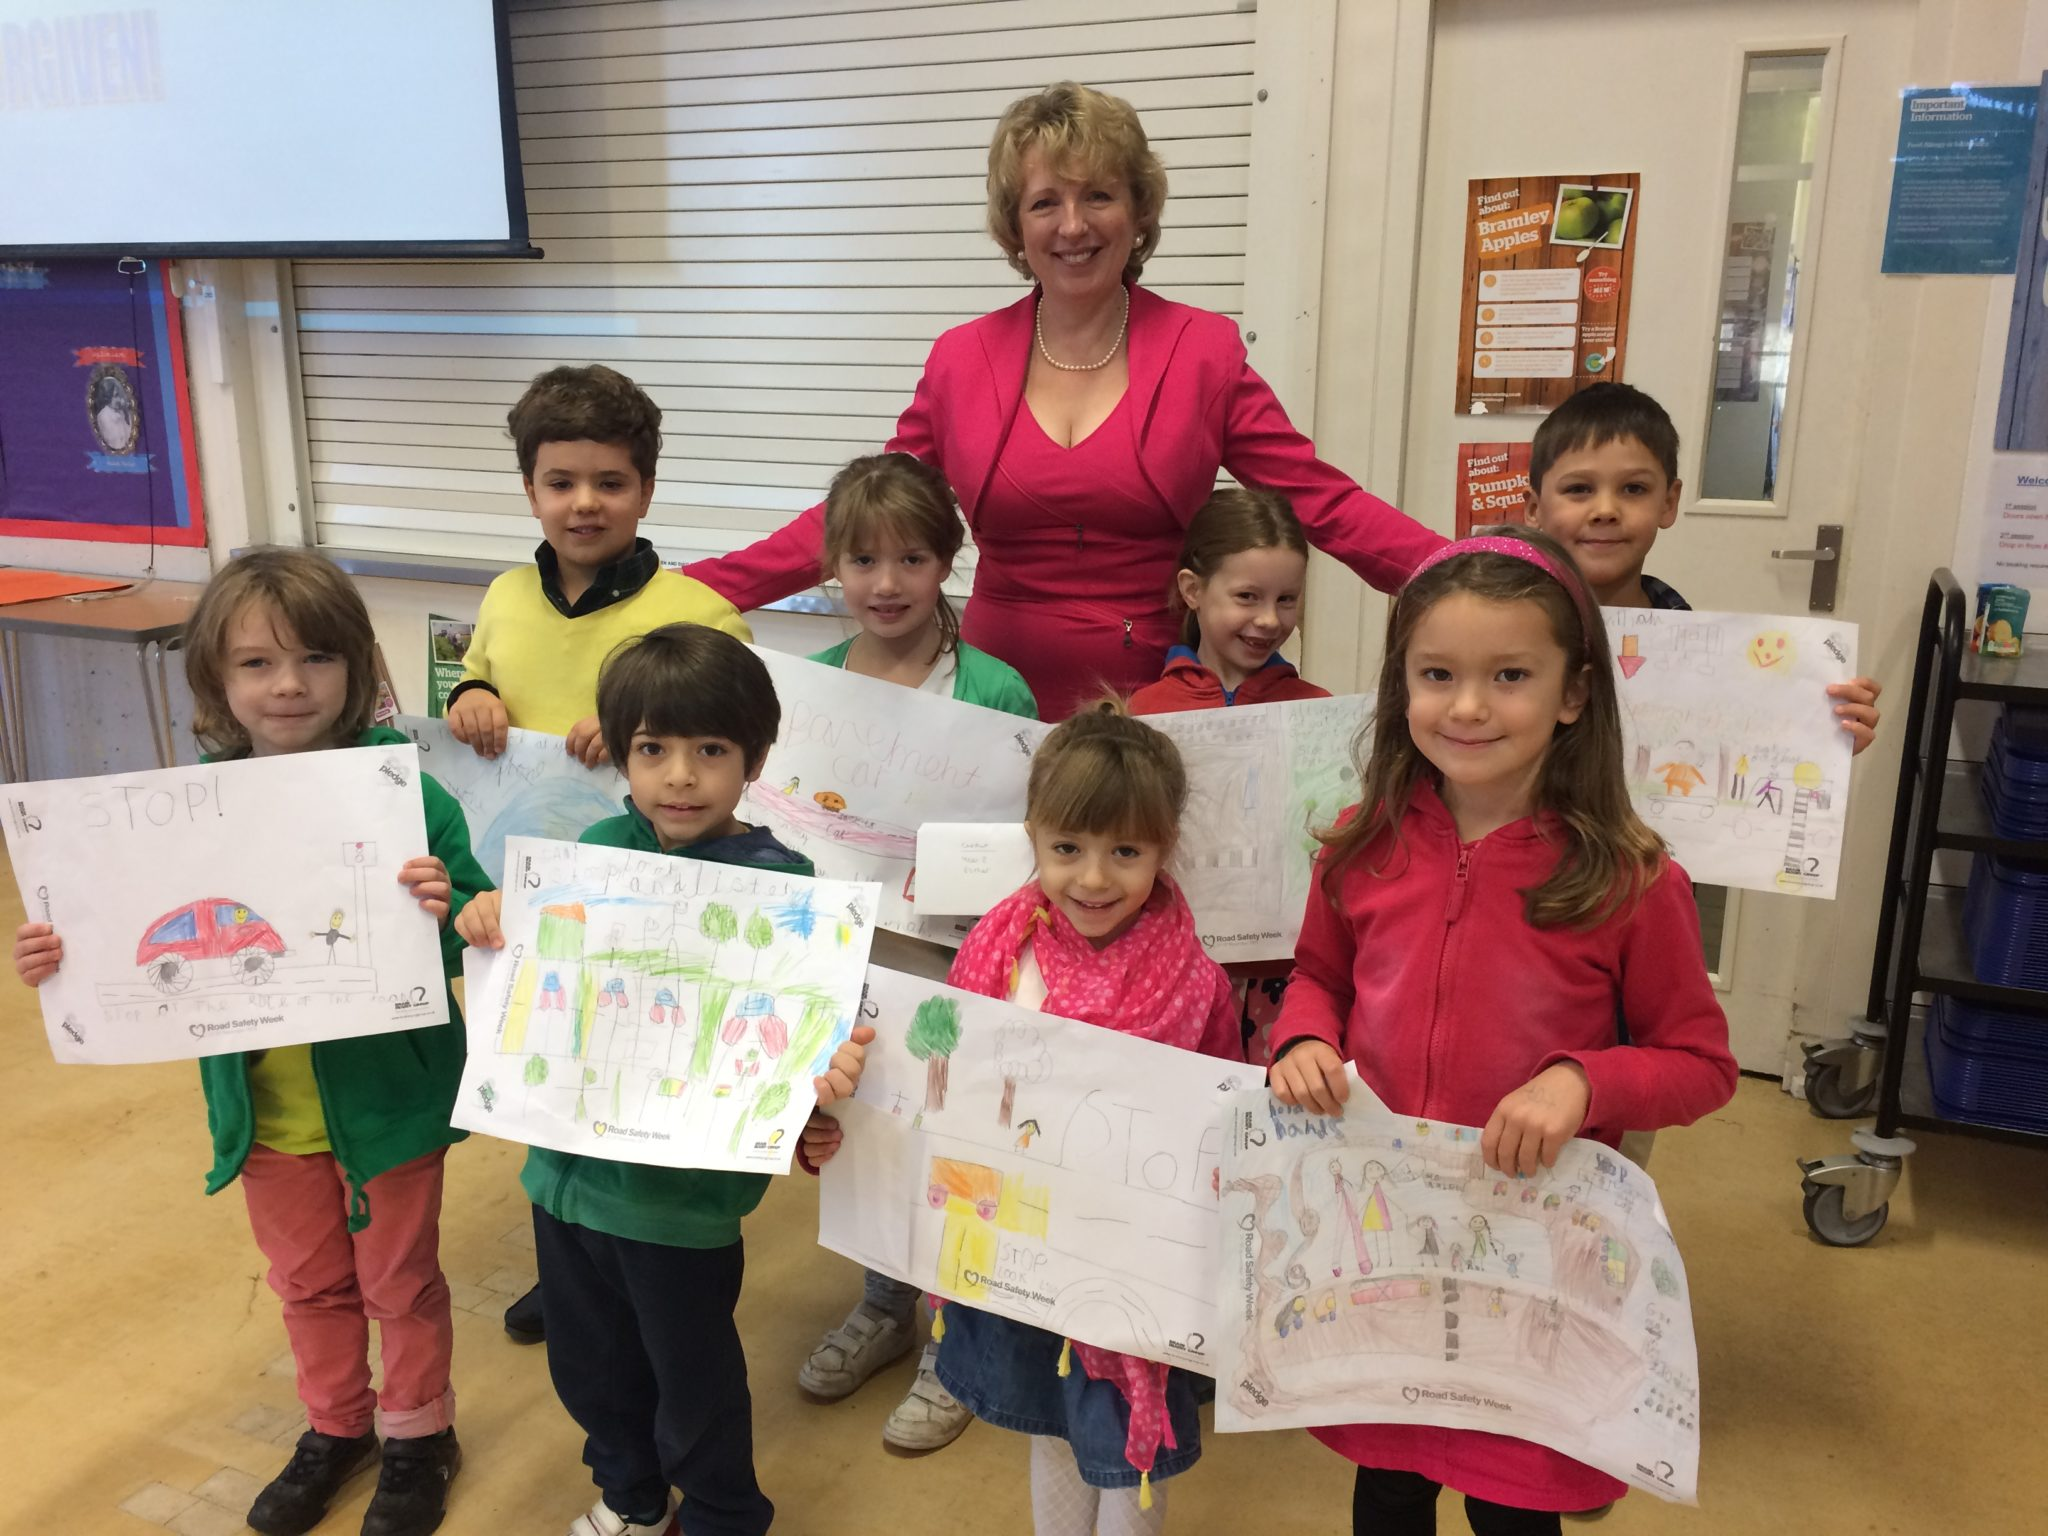 Guildford pupils take home messages to share with family and friends after taking part in poster competition for Road Safety Week